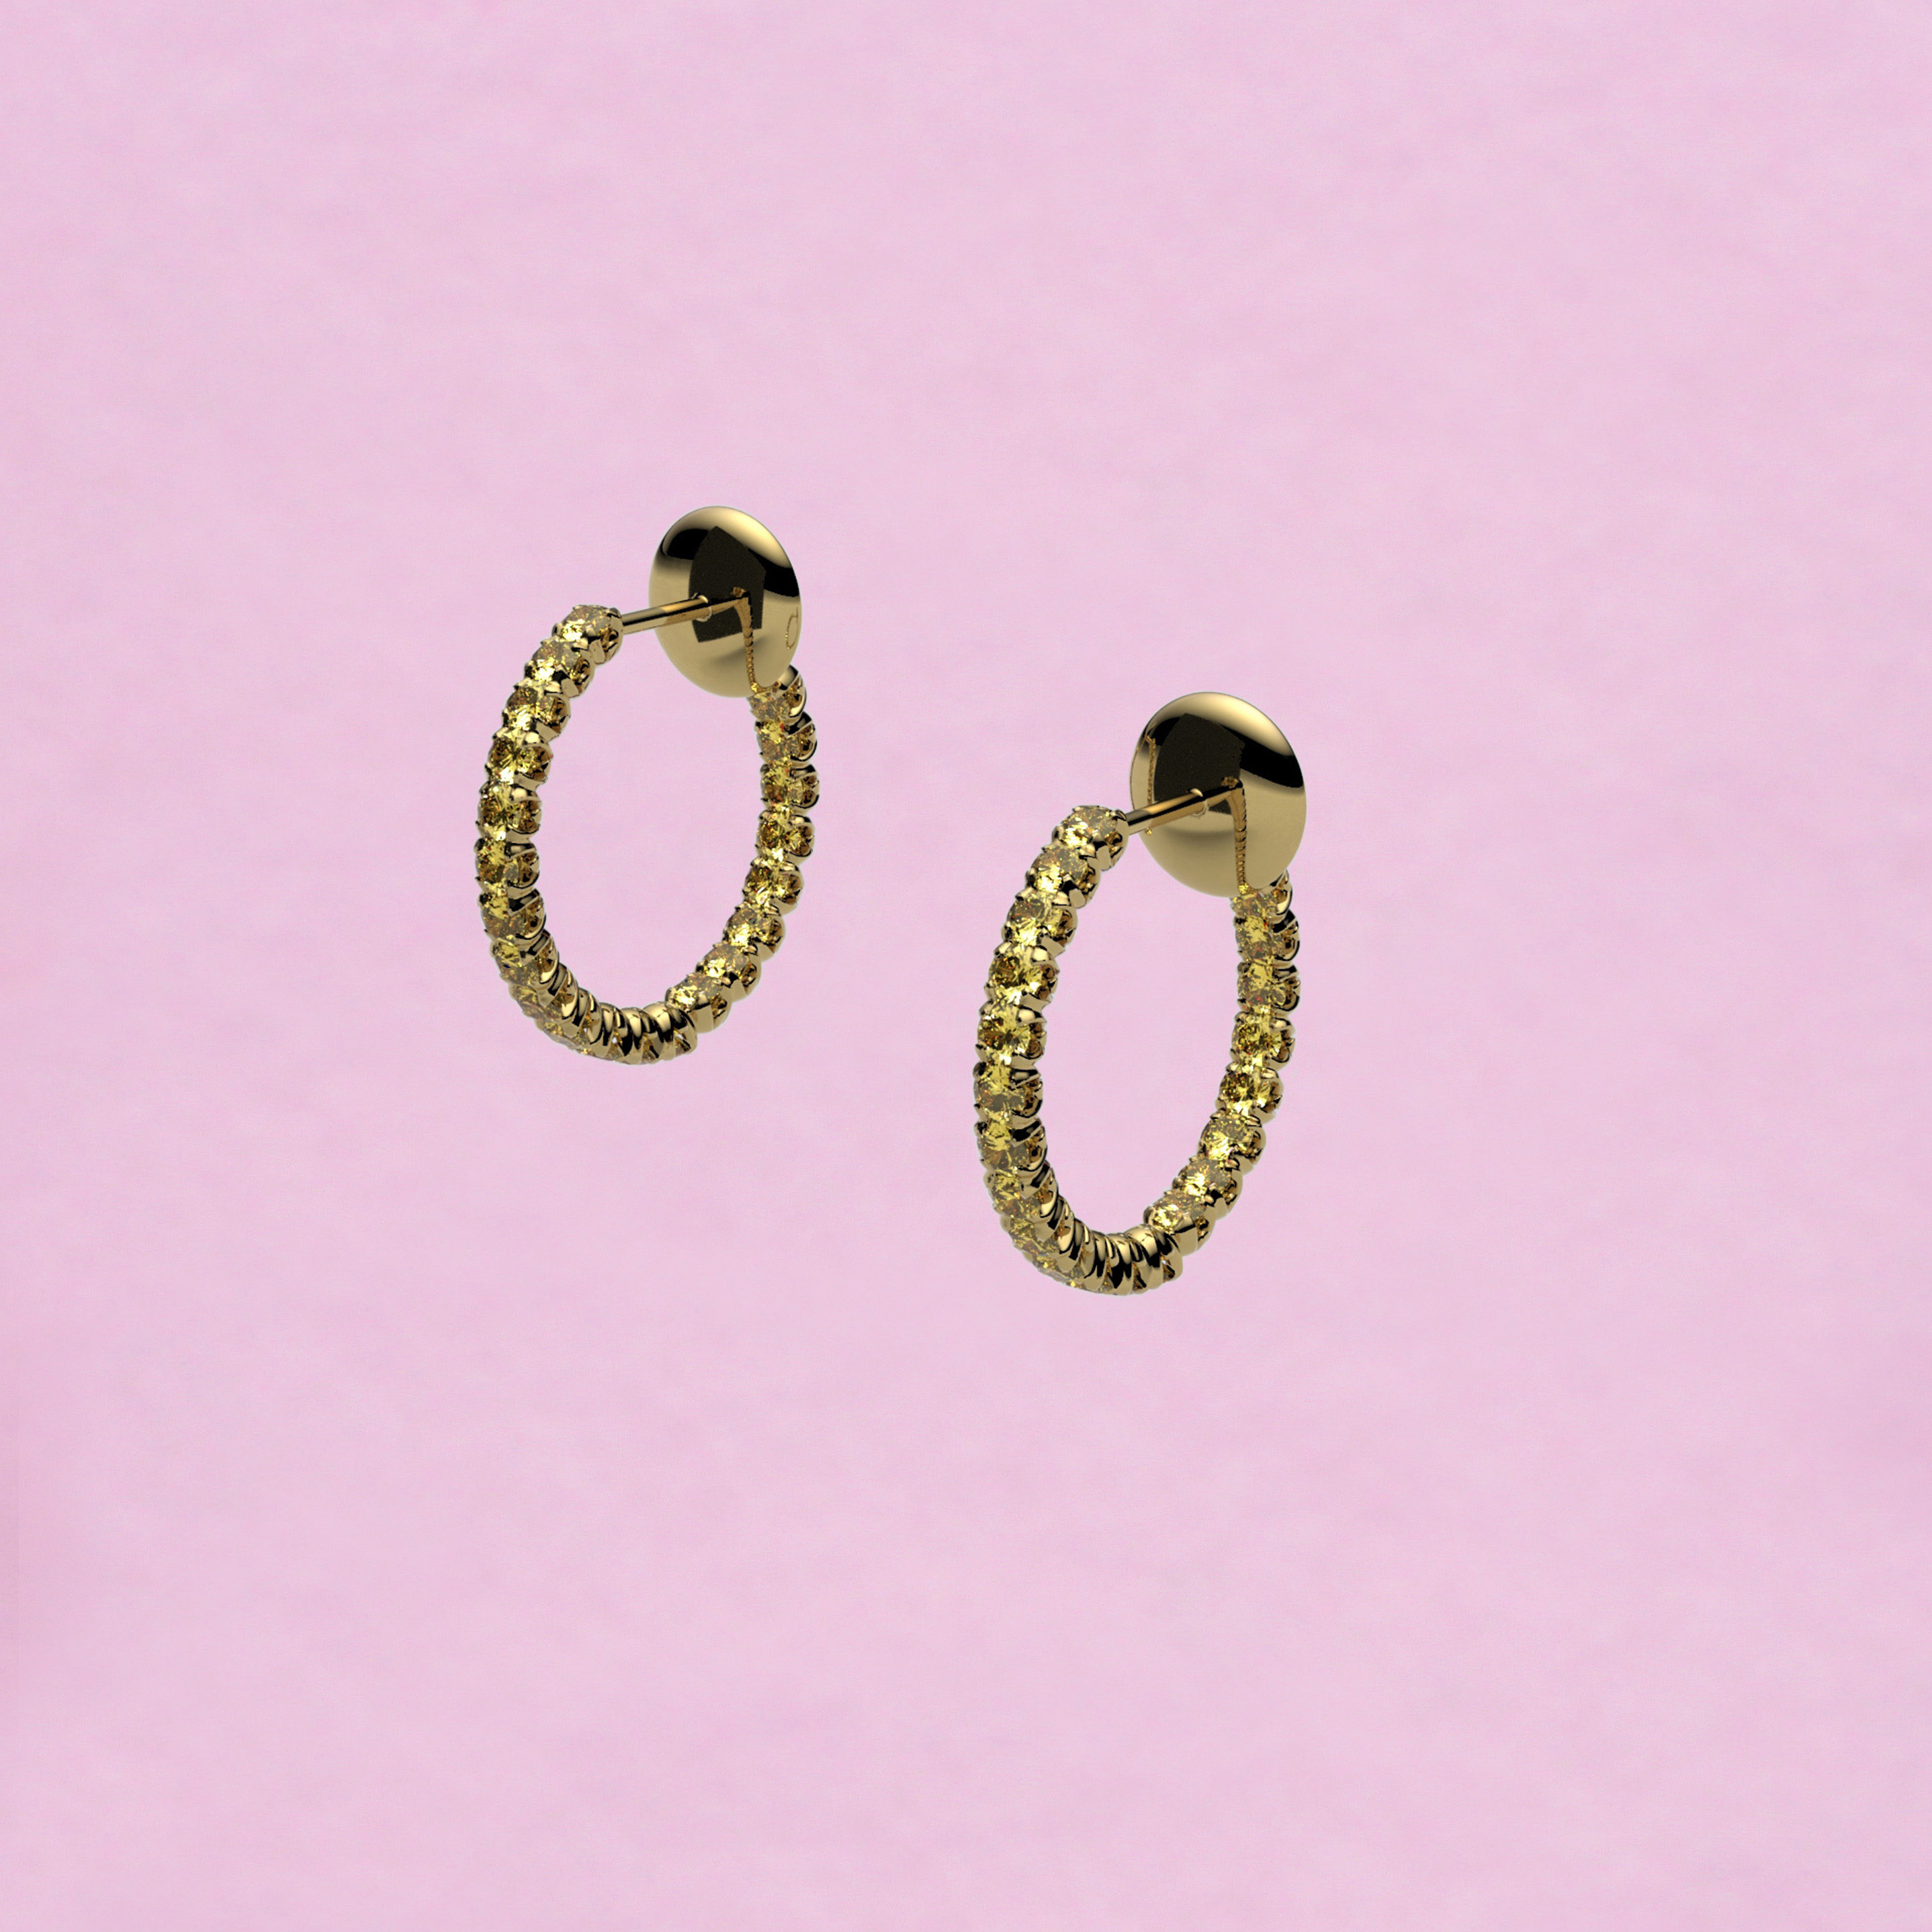 blossom hoop earrings – yellow sapphire and 18k yellow gold